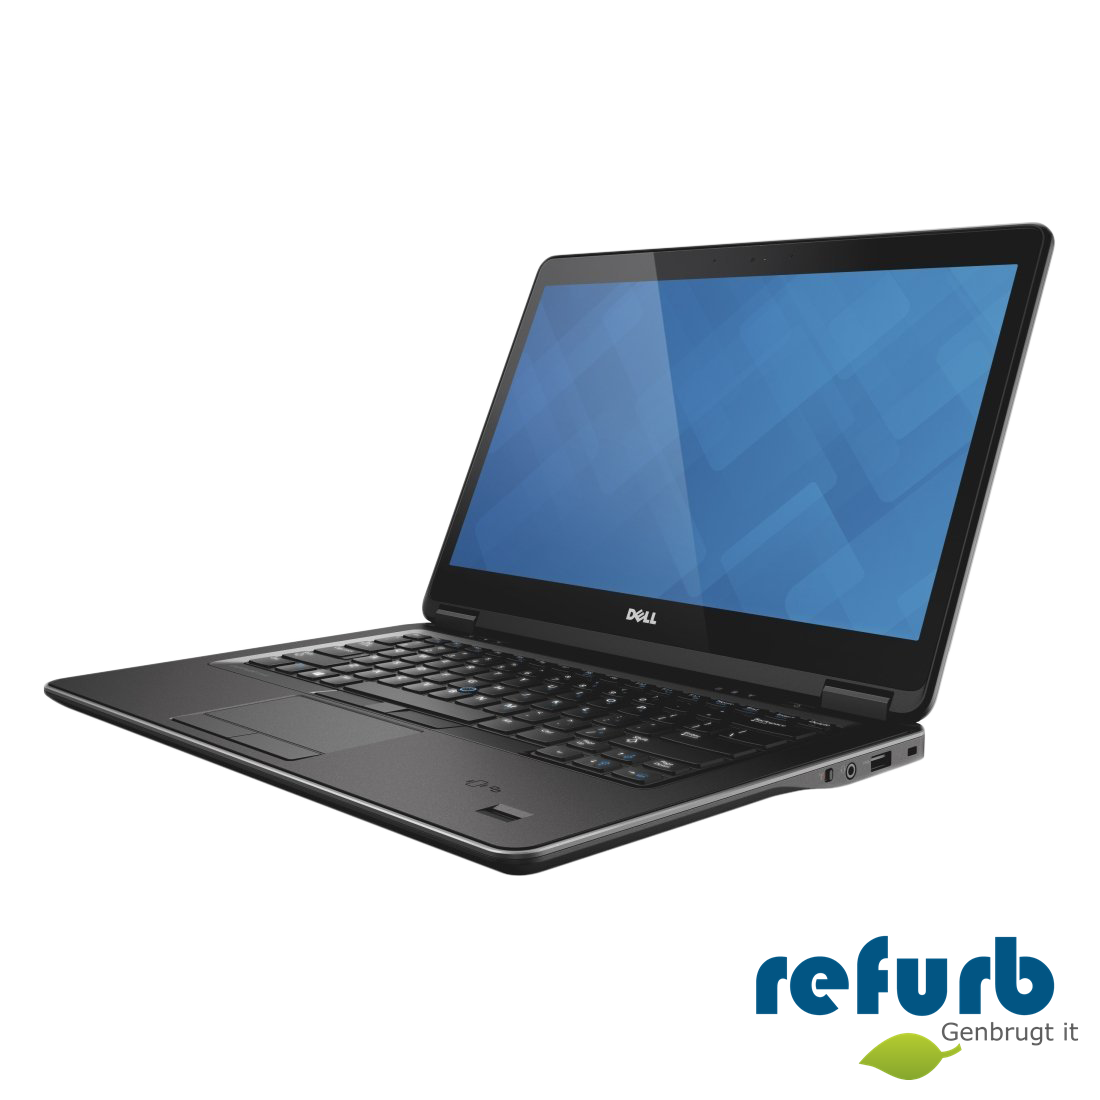 Dell latitude e7440 fra Dell fra refurb